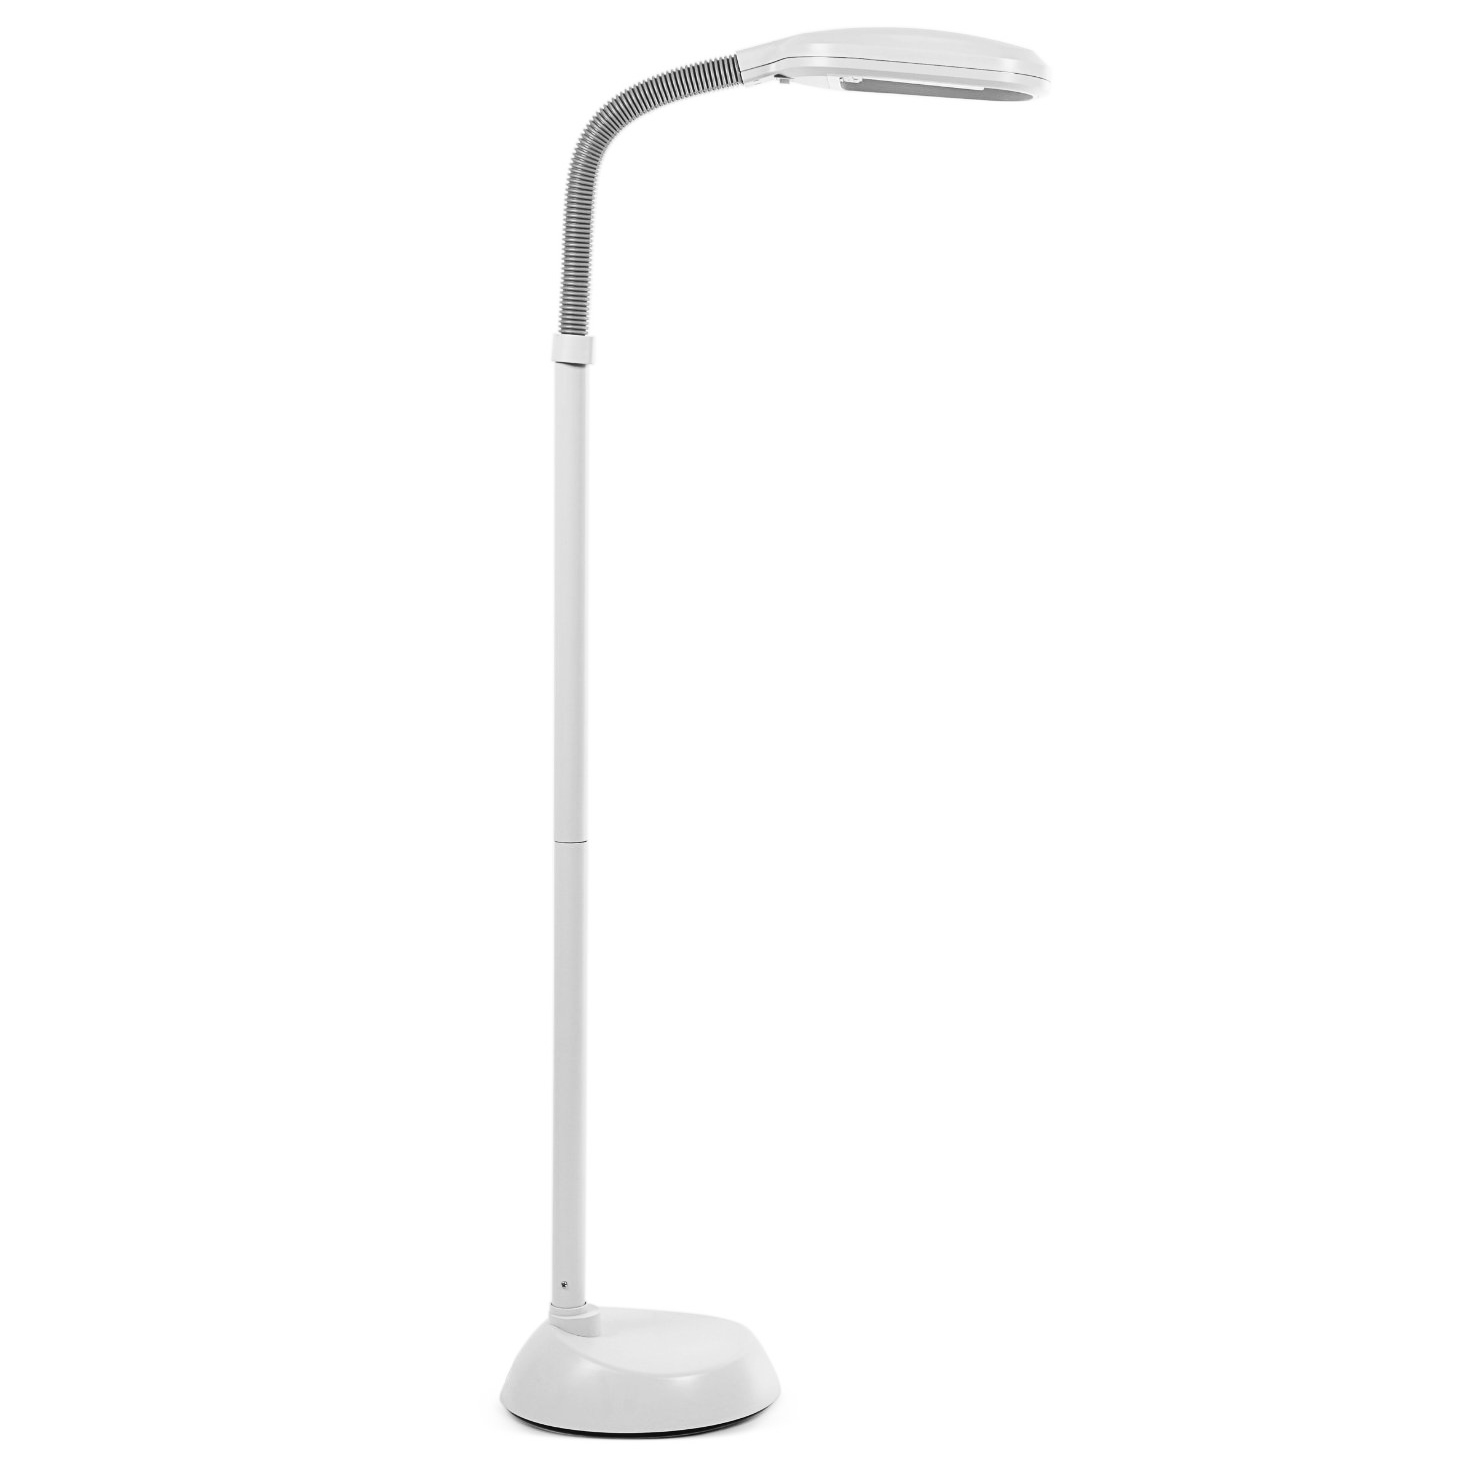 daylight energy saving 27w floor standing reading lamp. Black Bedroom Furniture Sets. Home Design Ideas